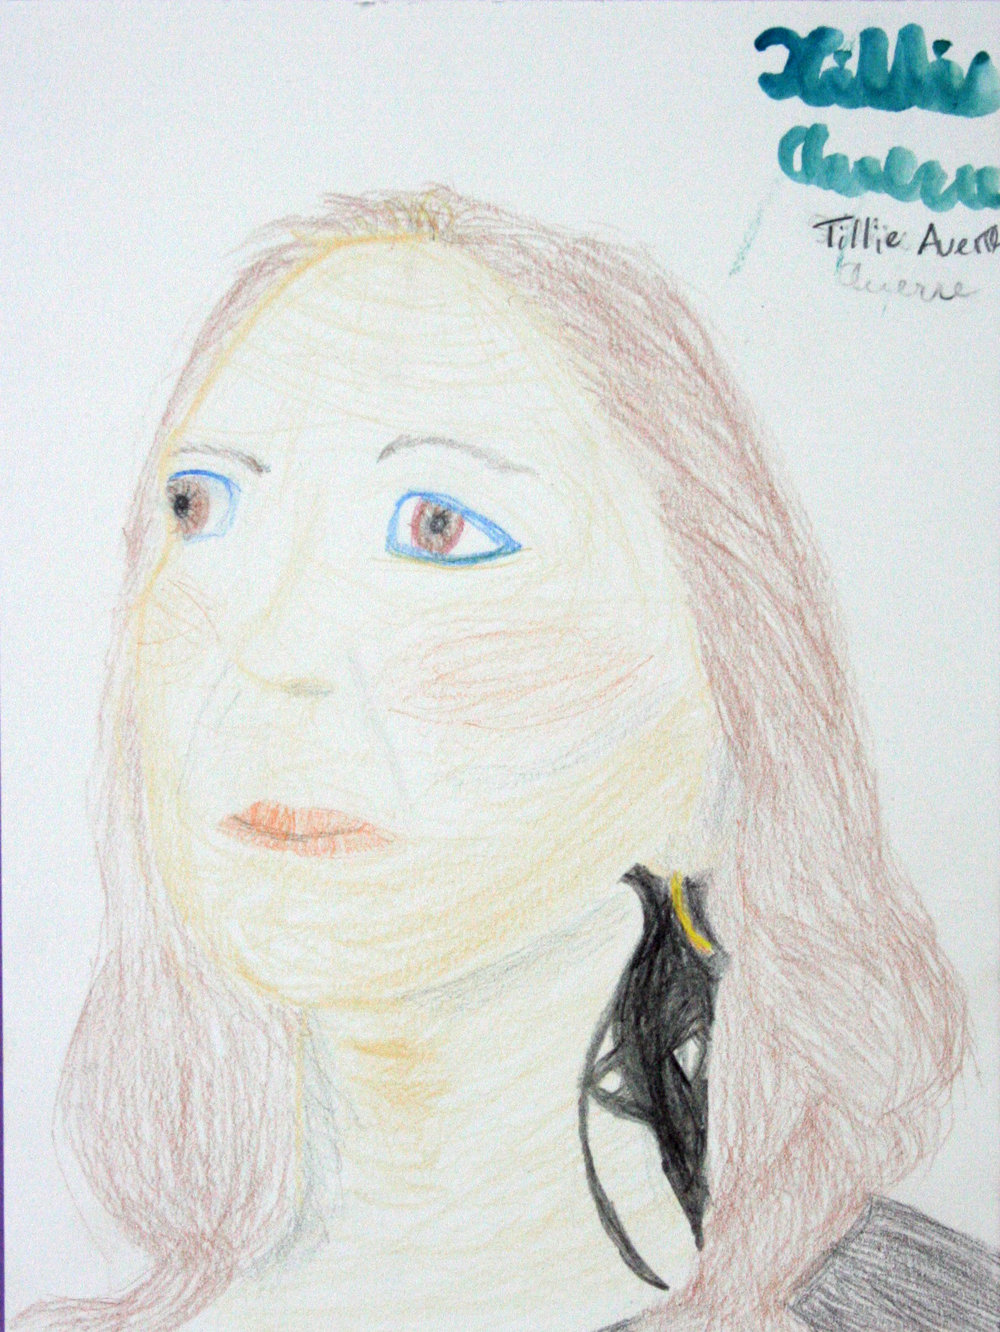 Tillie Averre did this drawing.